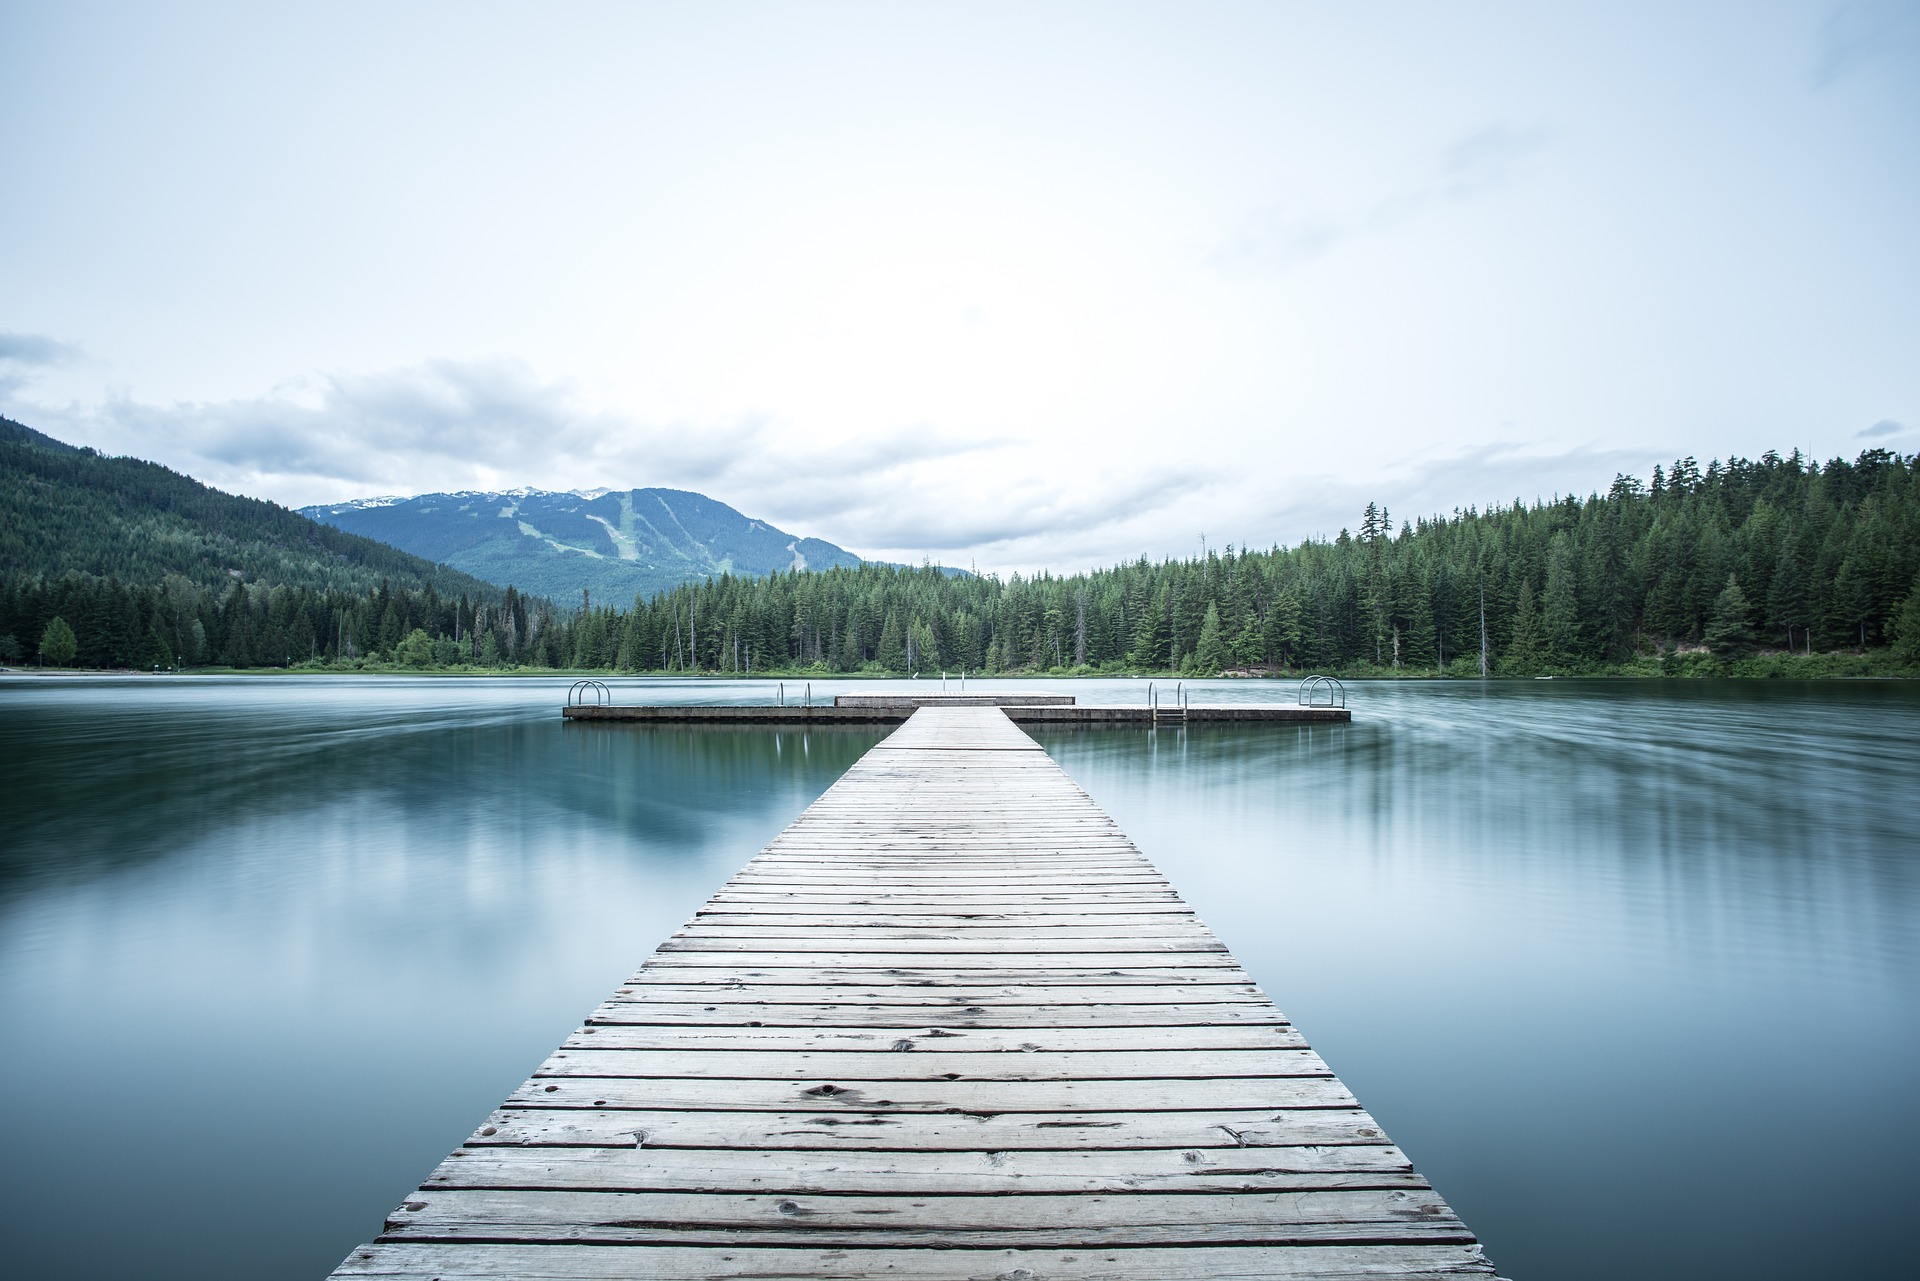 long pier on the lake - retirement security